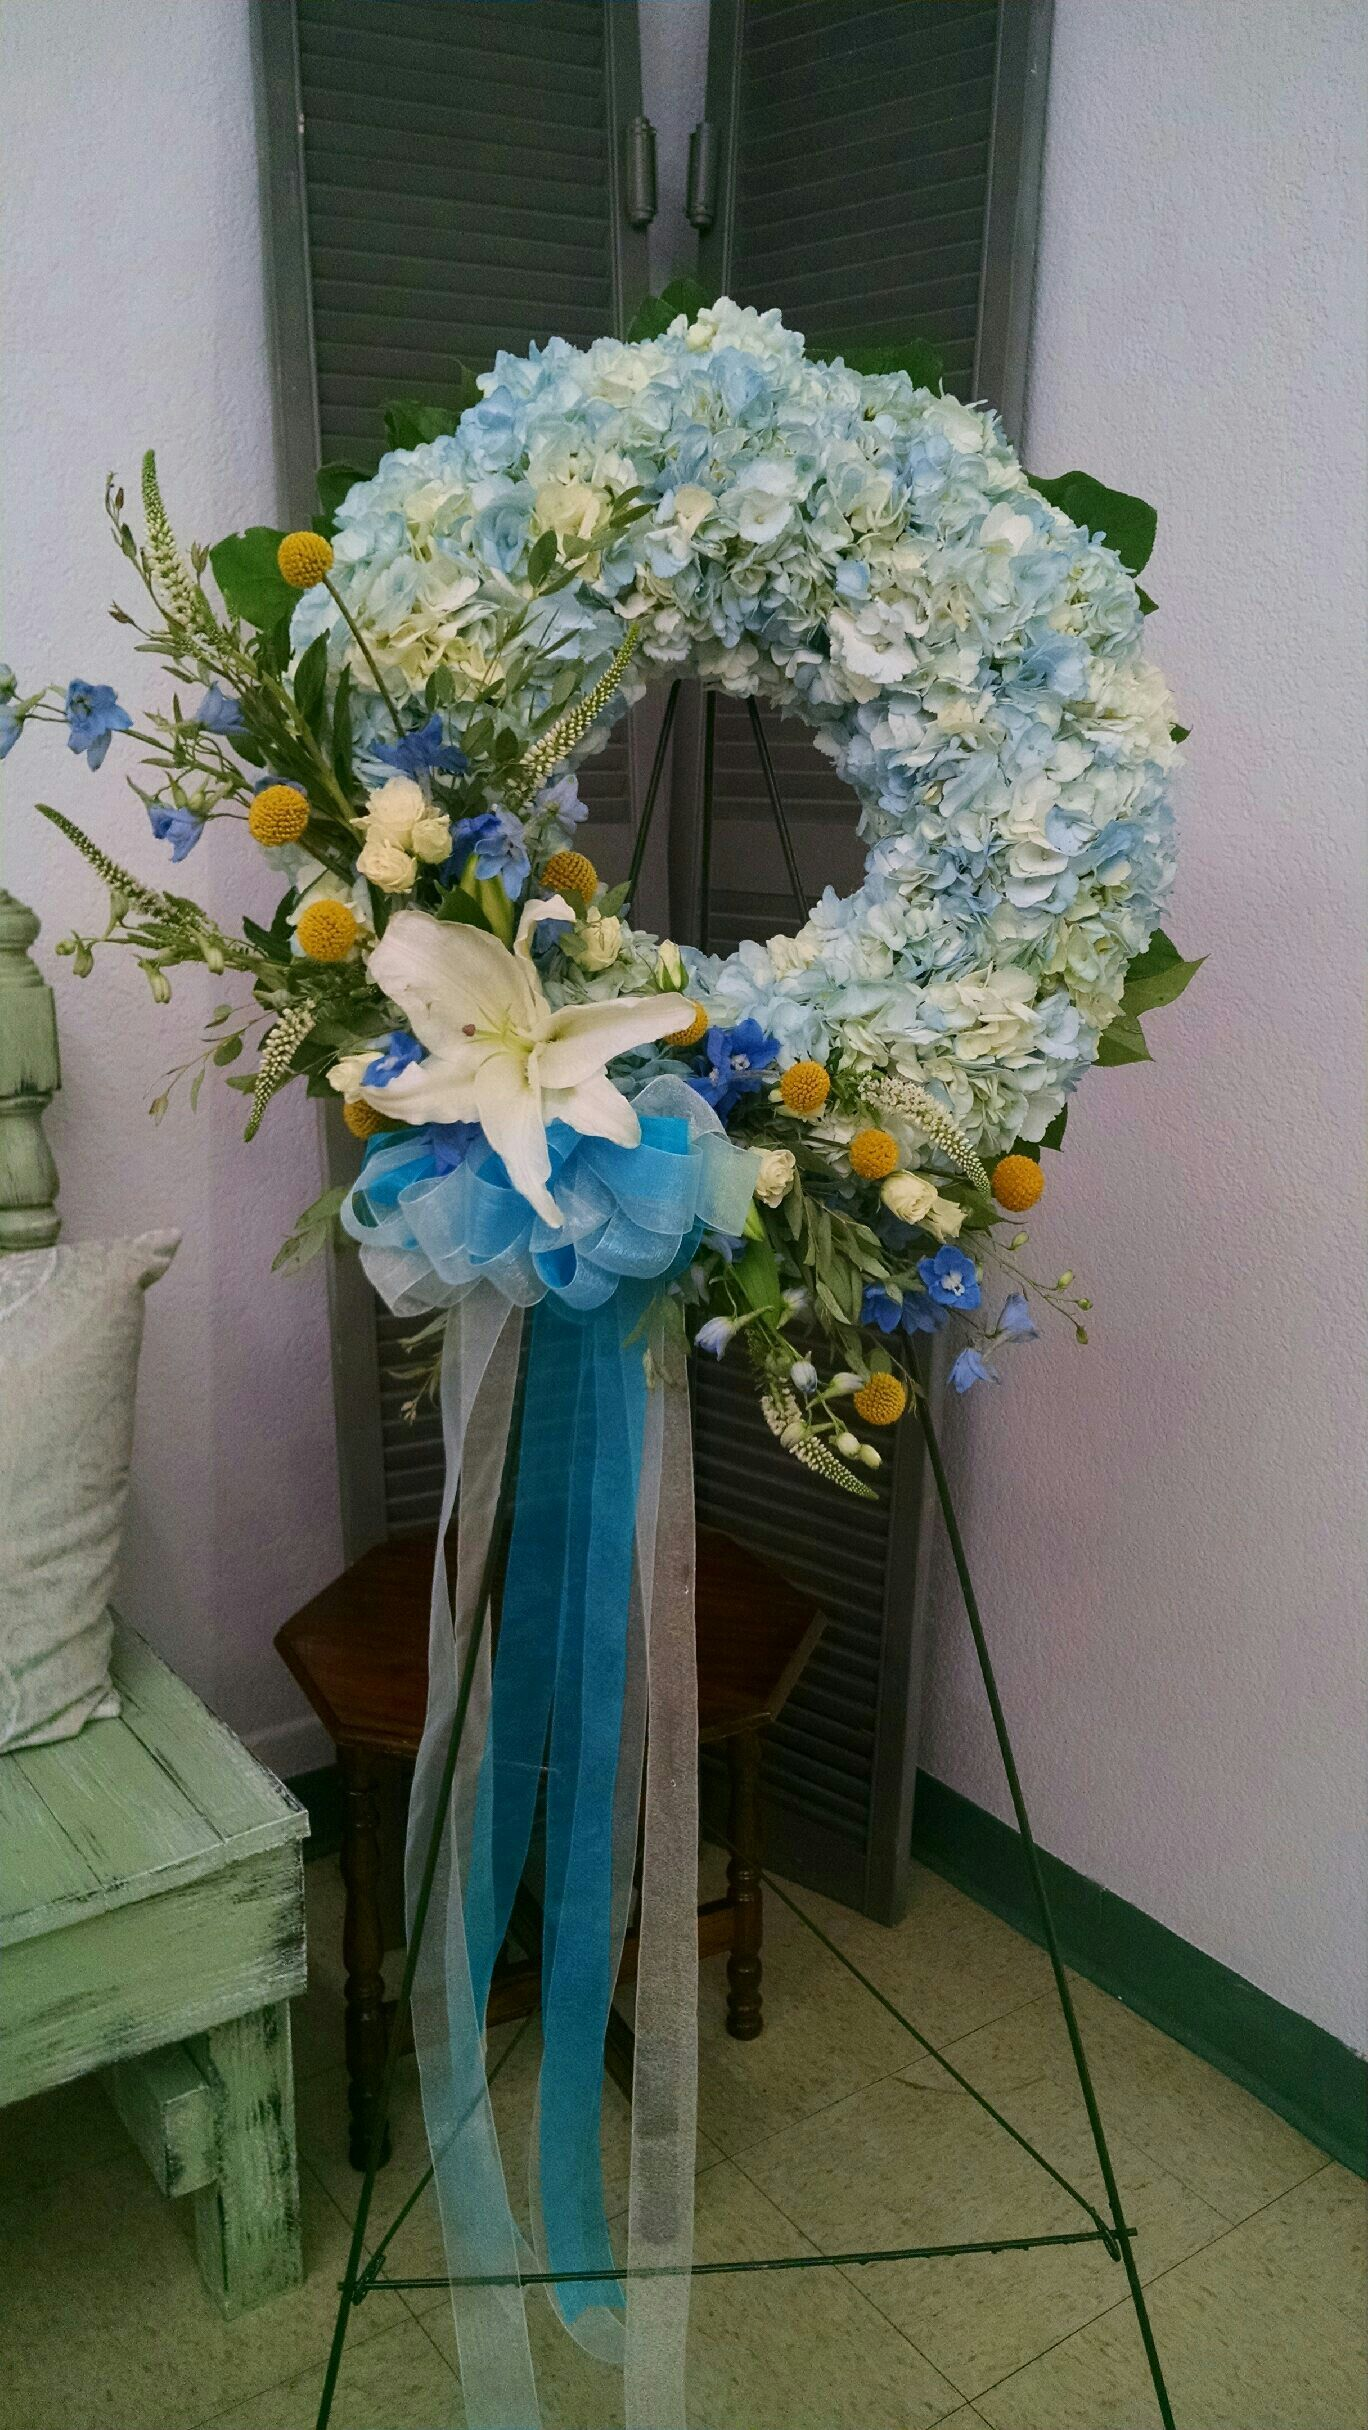 Blue Hydrangea Wreath Riverside Flower Club Funeral Flowers Wreath Decor Blue Hydrangea Wreath